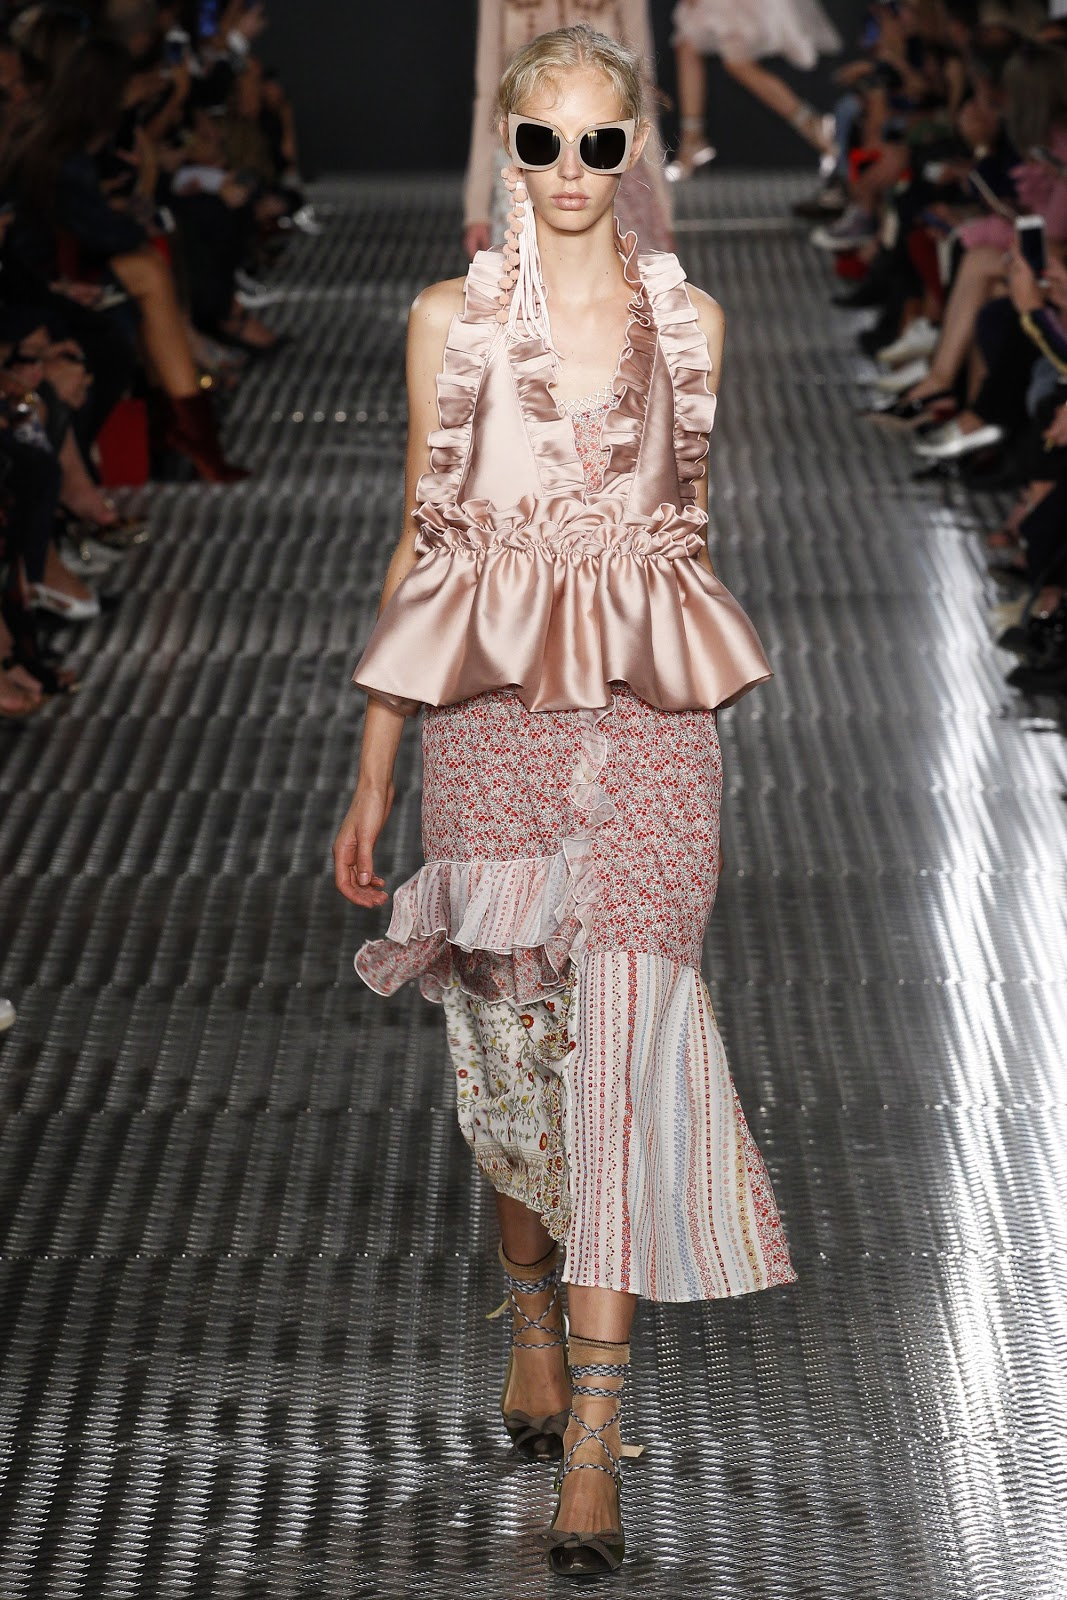 Runway No 21 Spring Rtw Collection At Milan Fashion Week 2017 Cool Chic Style Fashion